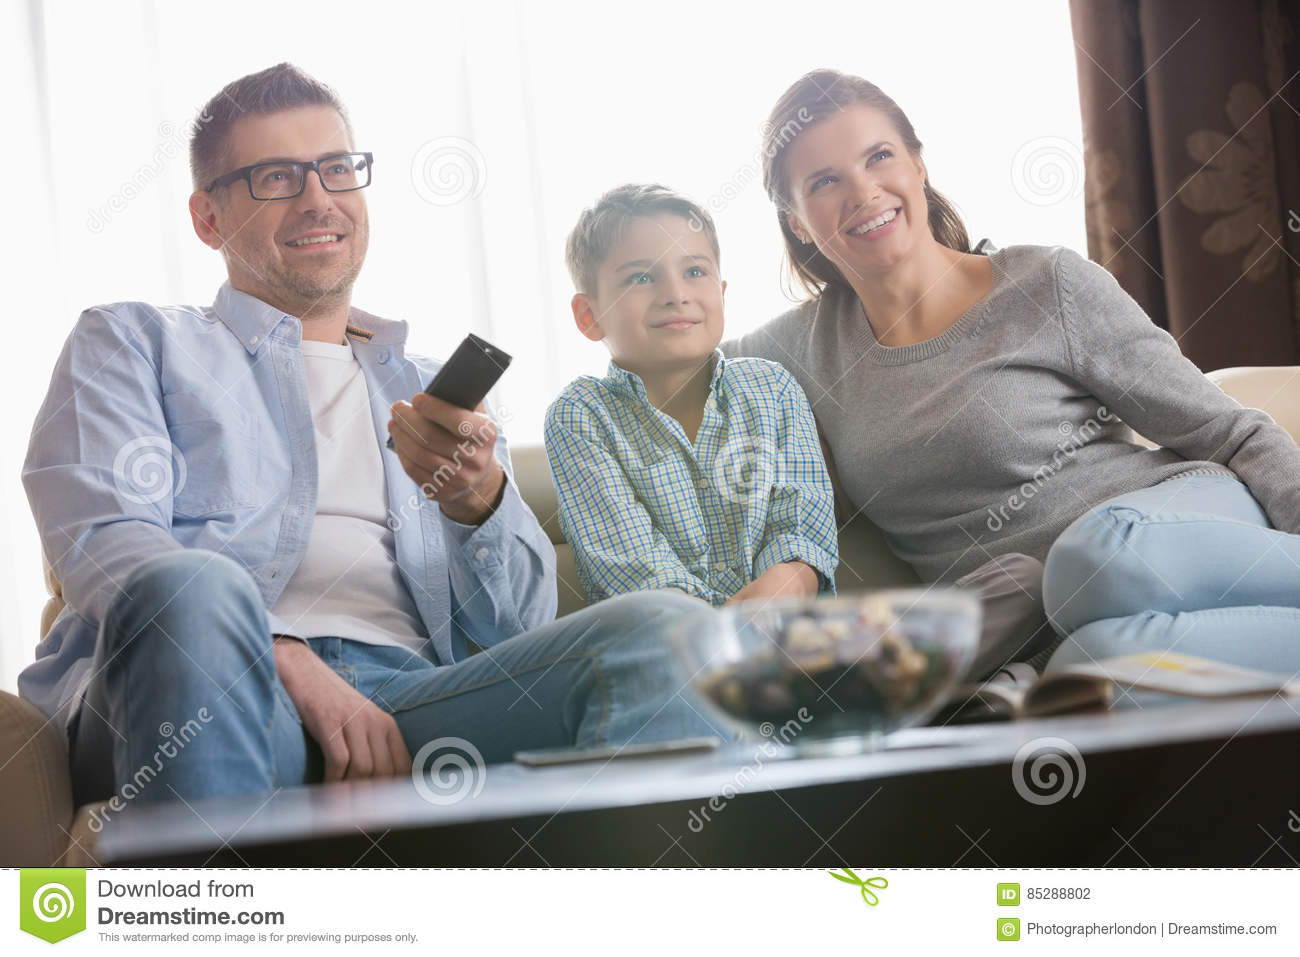 Boy watching TV with parents in living room